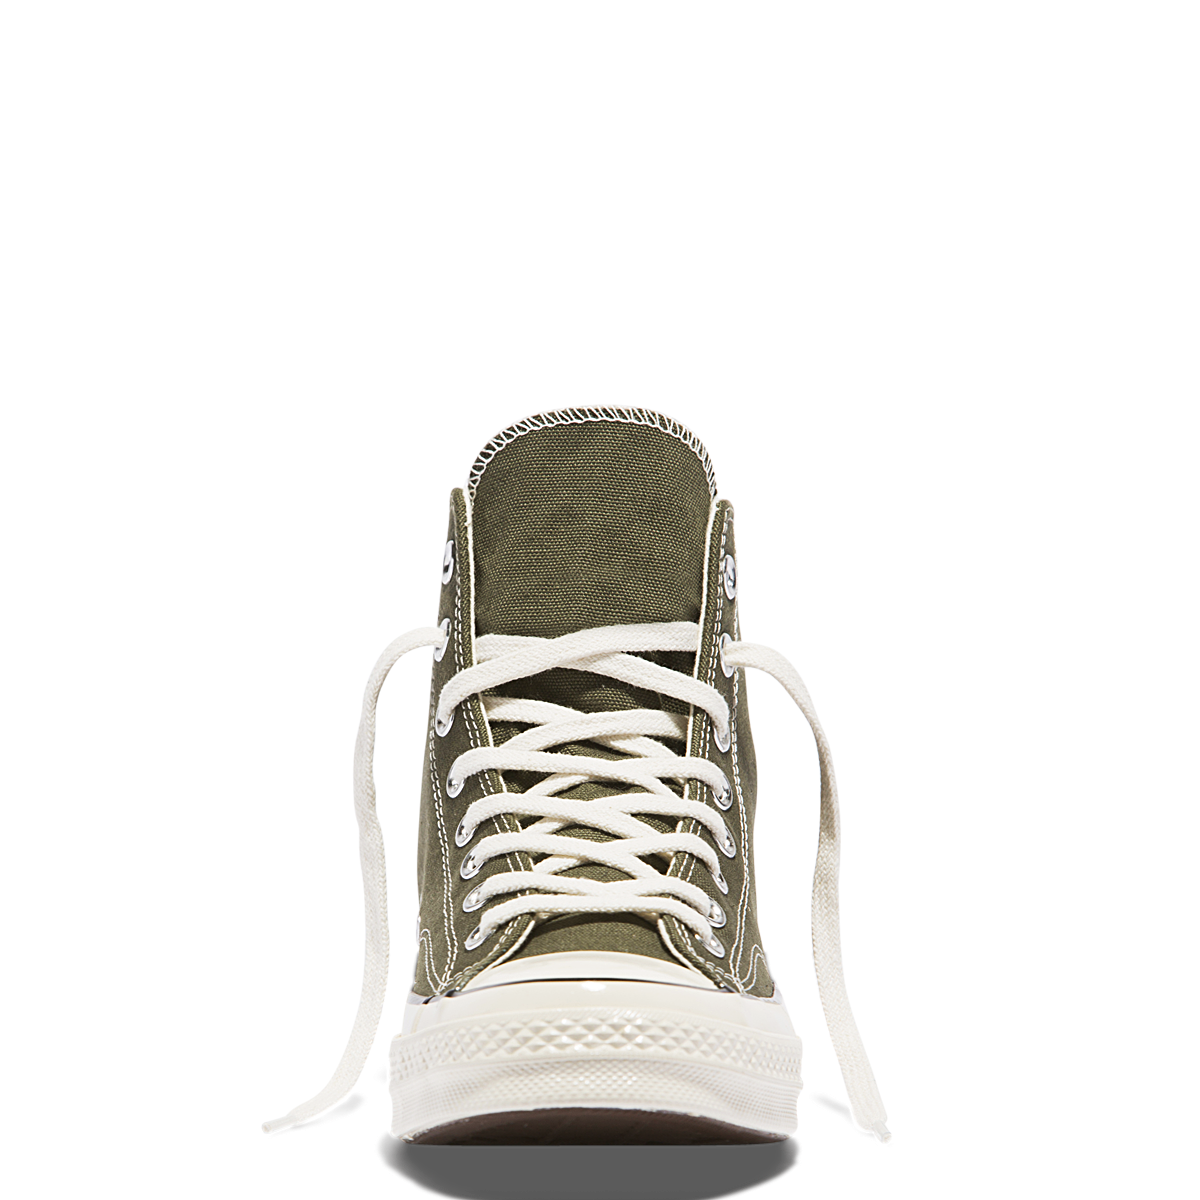 CHUCK TAYLOR ALL STAR 70 VINTAGE CANVAS HIGH TOP